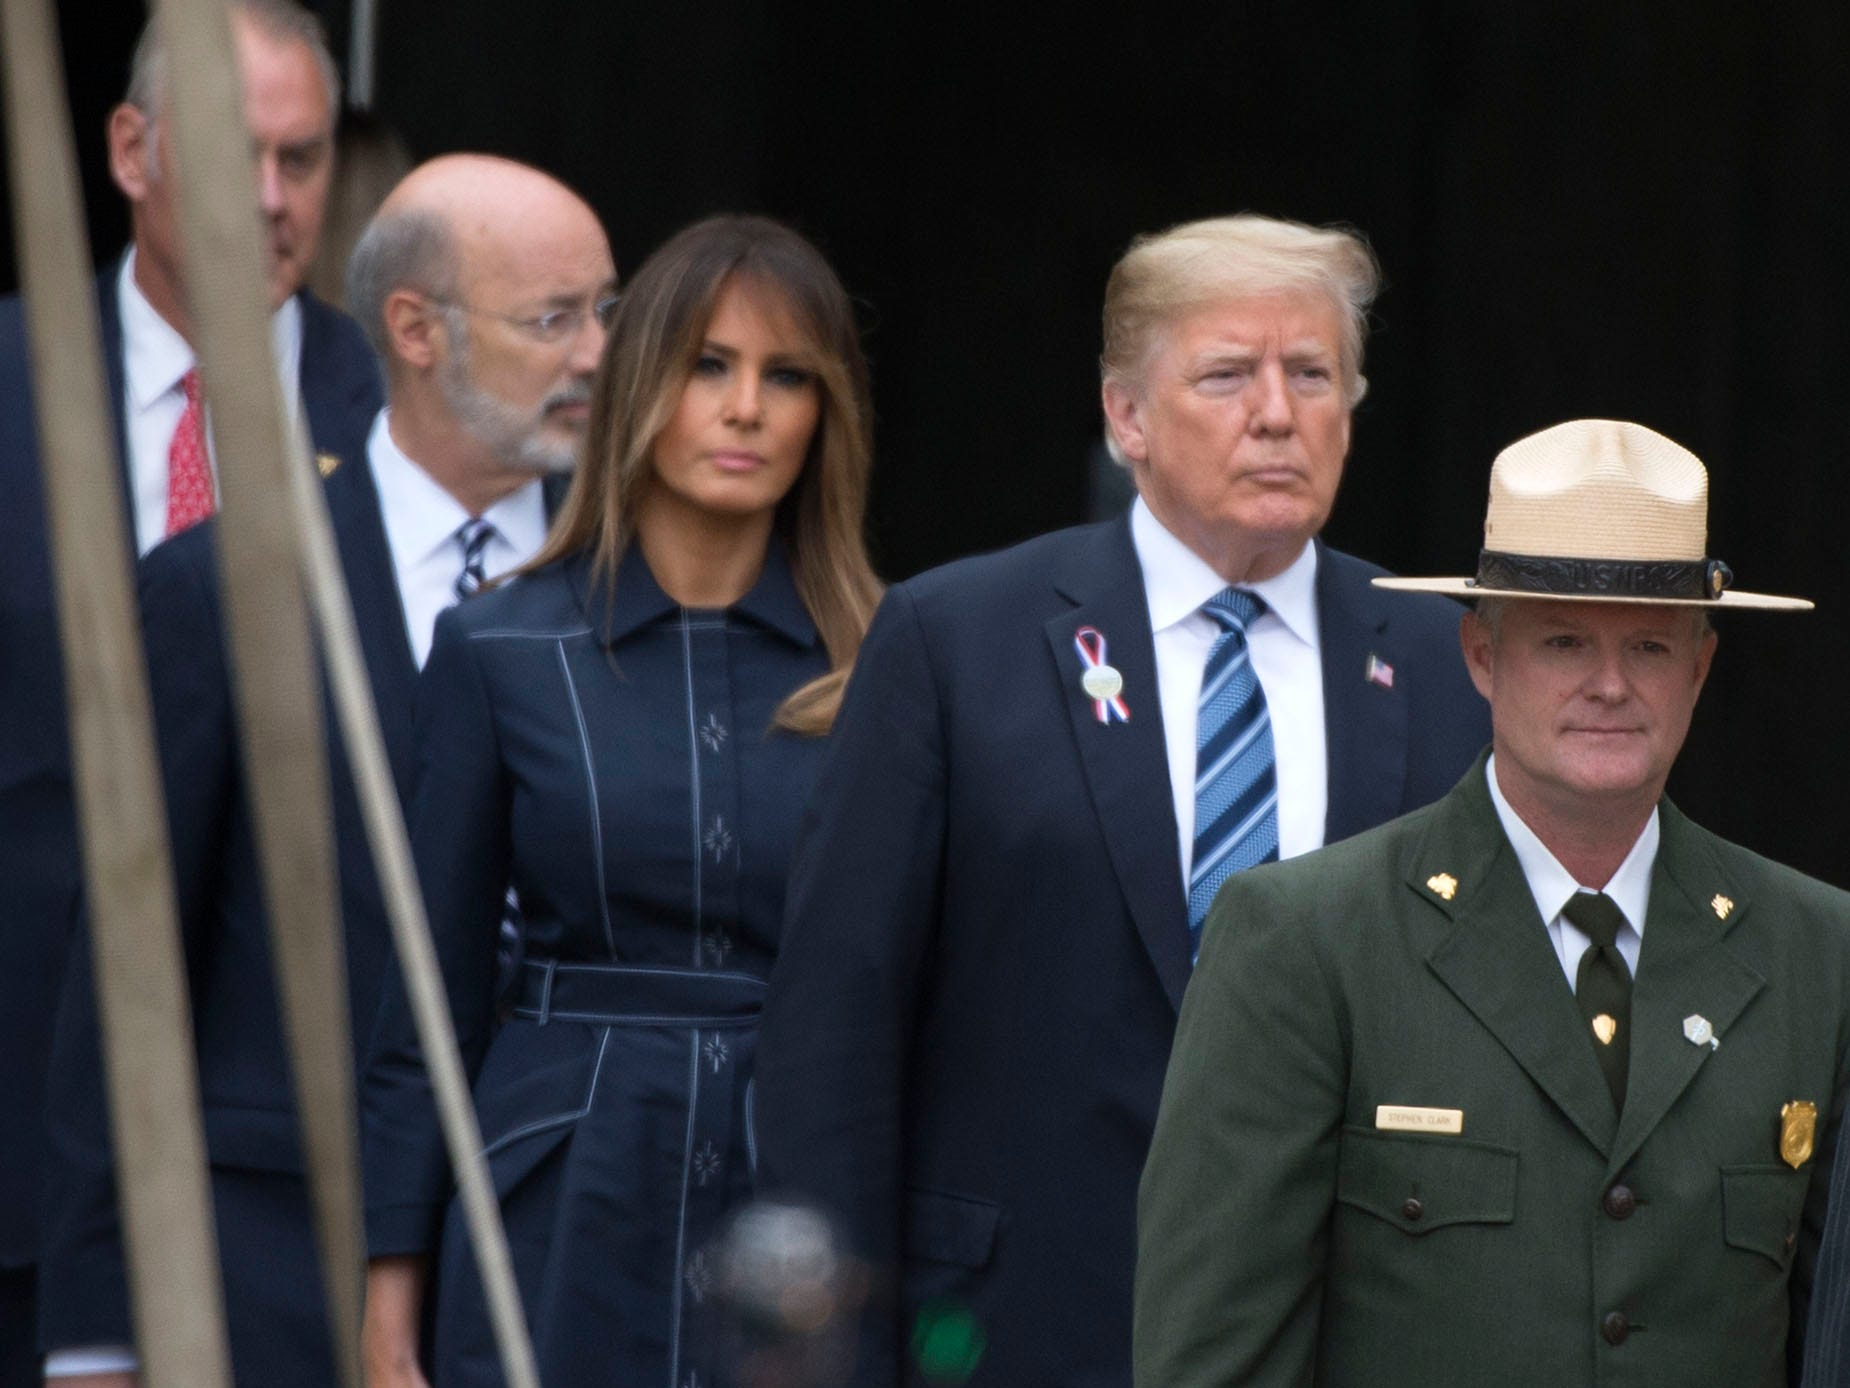 U.S. President Donald Trump and wife, Melania, attend functions during the 9/11 recognitioin ceremony. The Flight 93 National Memorial's 17th Annual September 11 ceremony is being held at the Memorial Plaza in Shanksville, Pa.